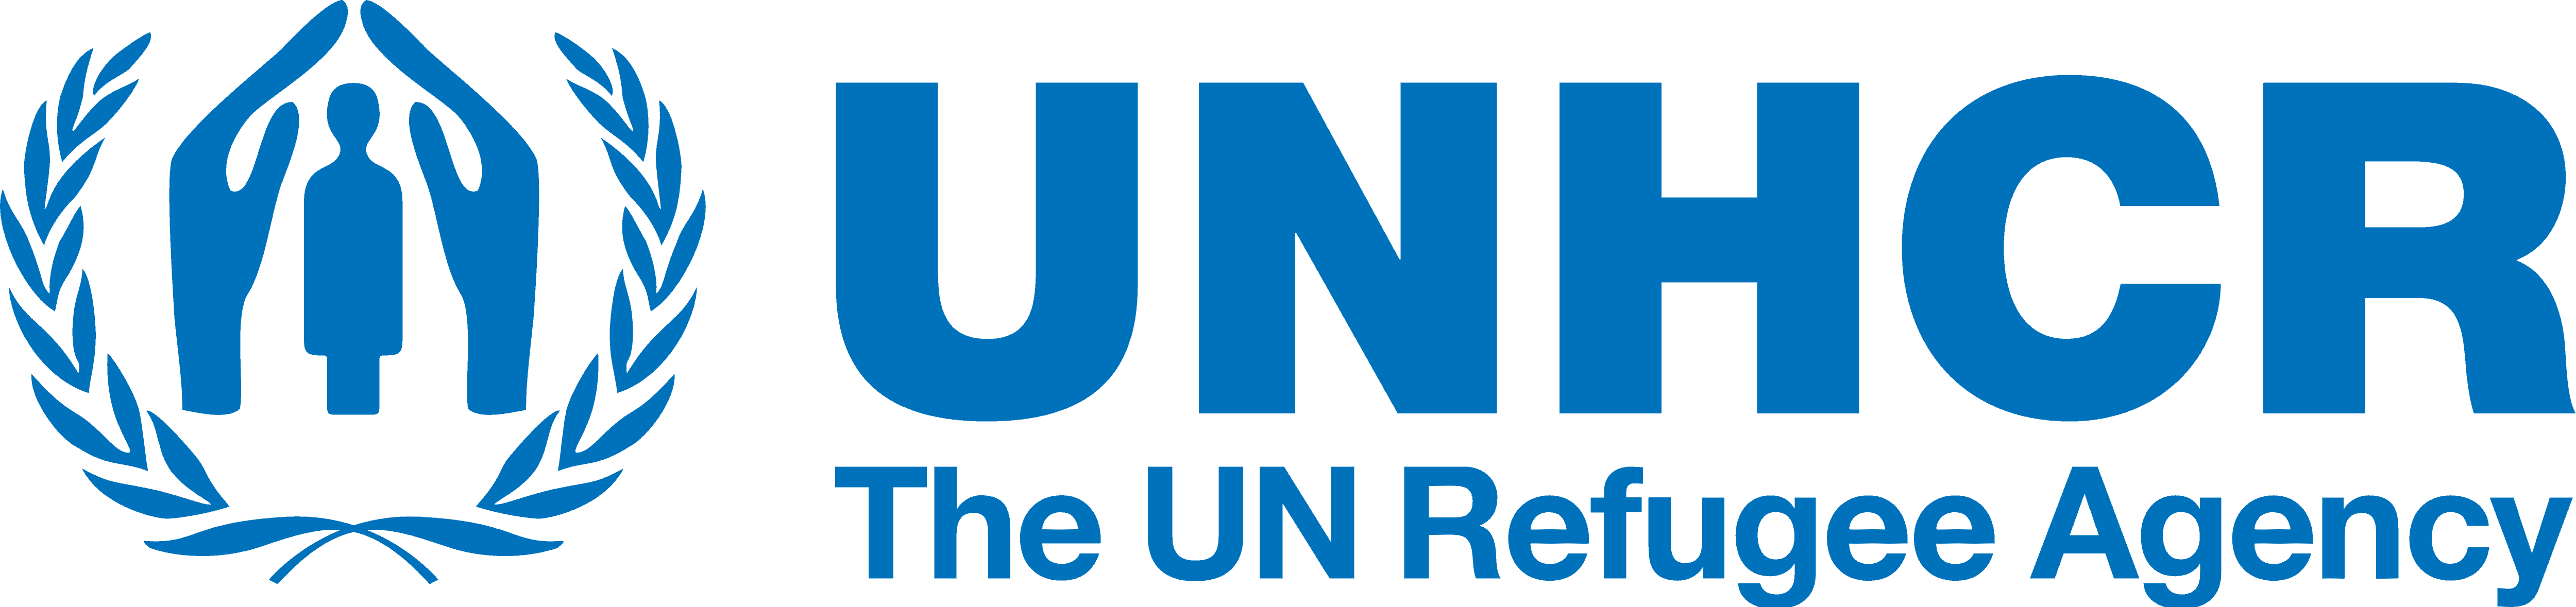 https://maritime.law/wp-content/uploads/2020/06/logo-UNHCR-01-1.png